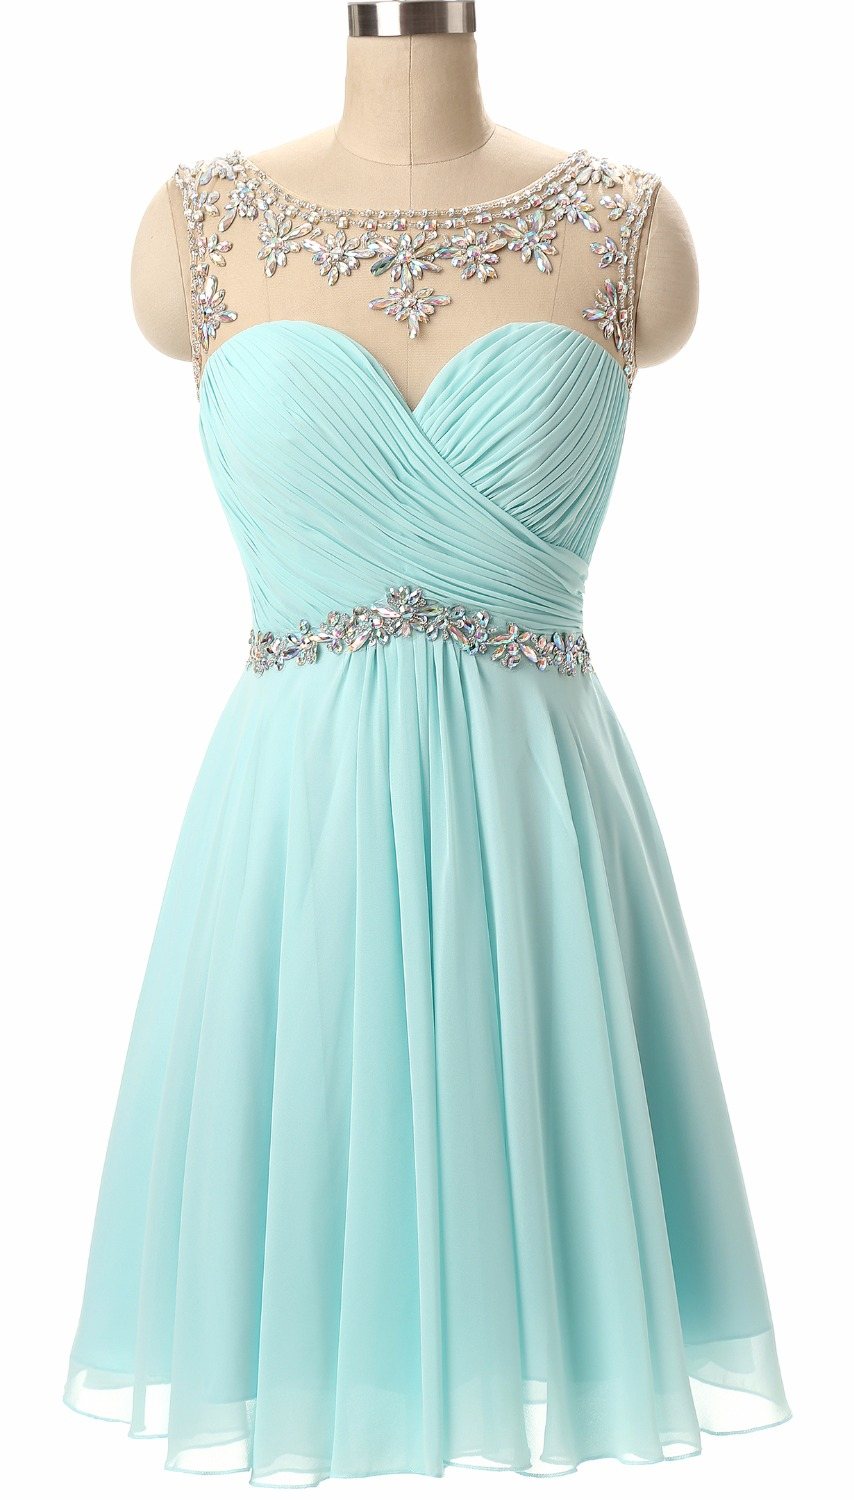 Chiffon Short Prom Party Dresses Girl's Homecoming Dresses with Beading